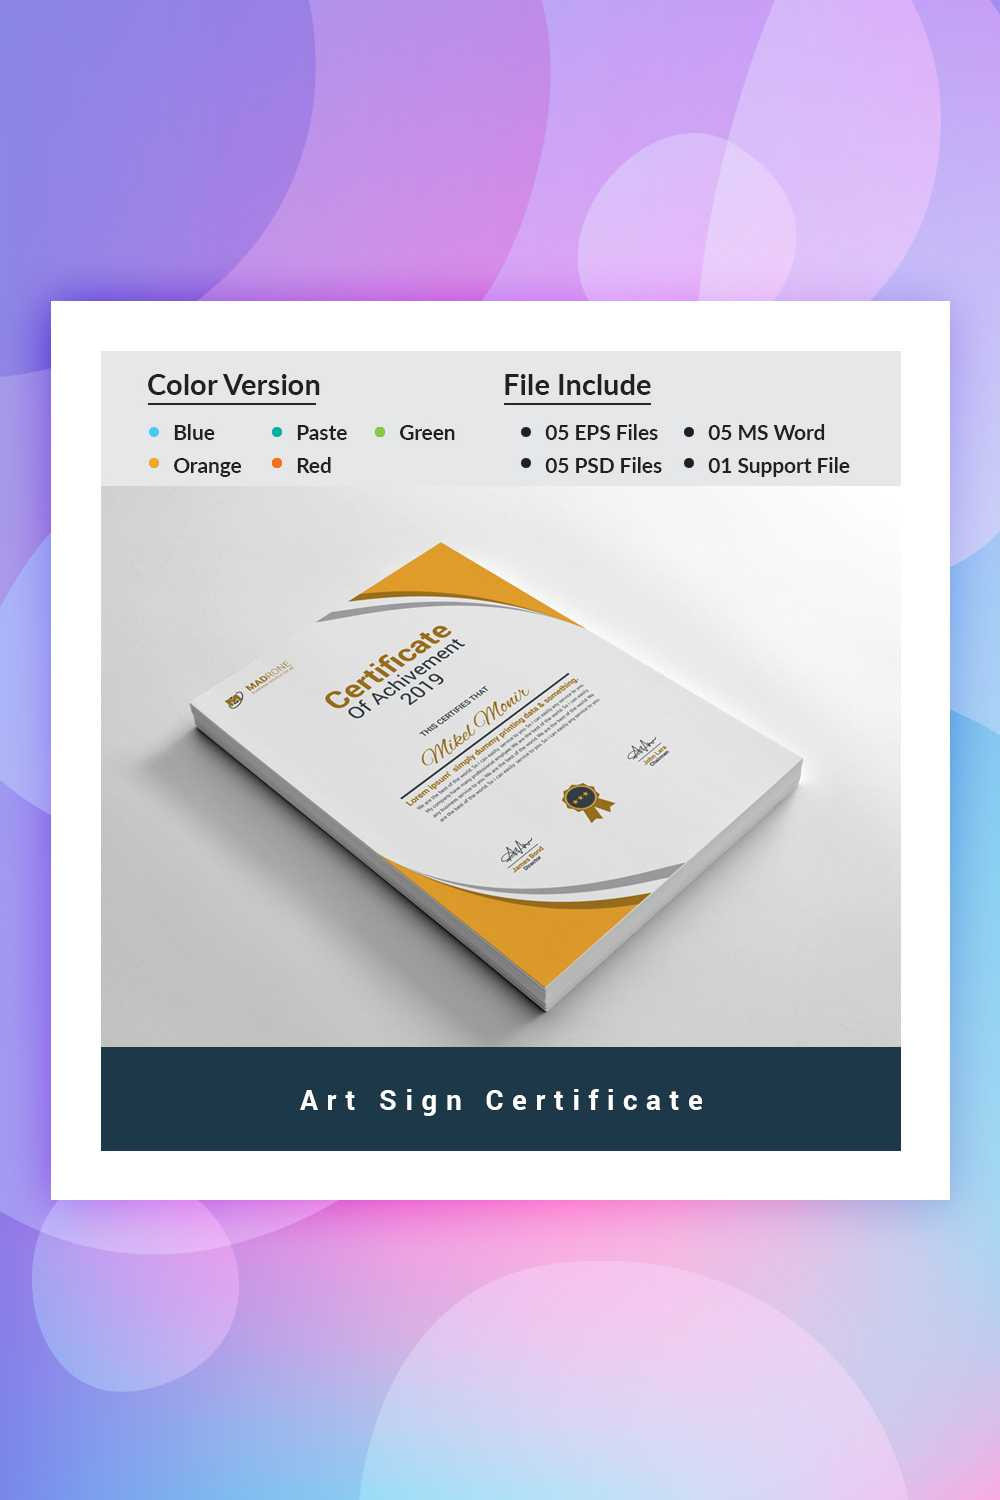 19 Attention-Grabbing Certificate Templates - Colorlib inside No Certificate Templates Could Be Found